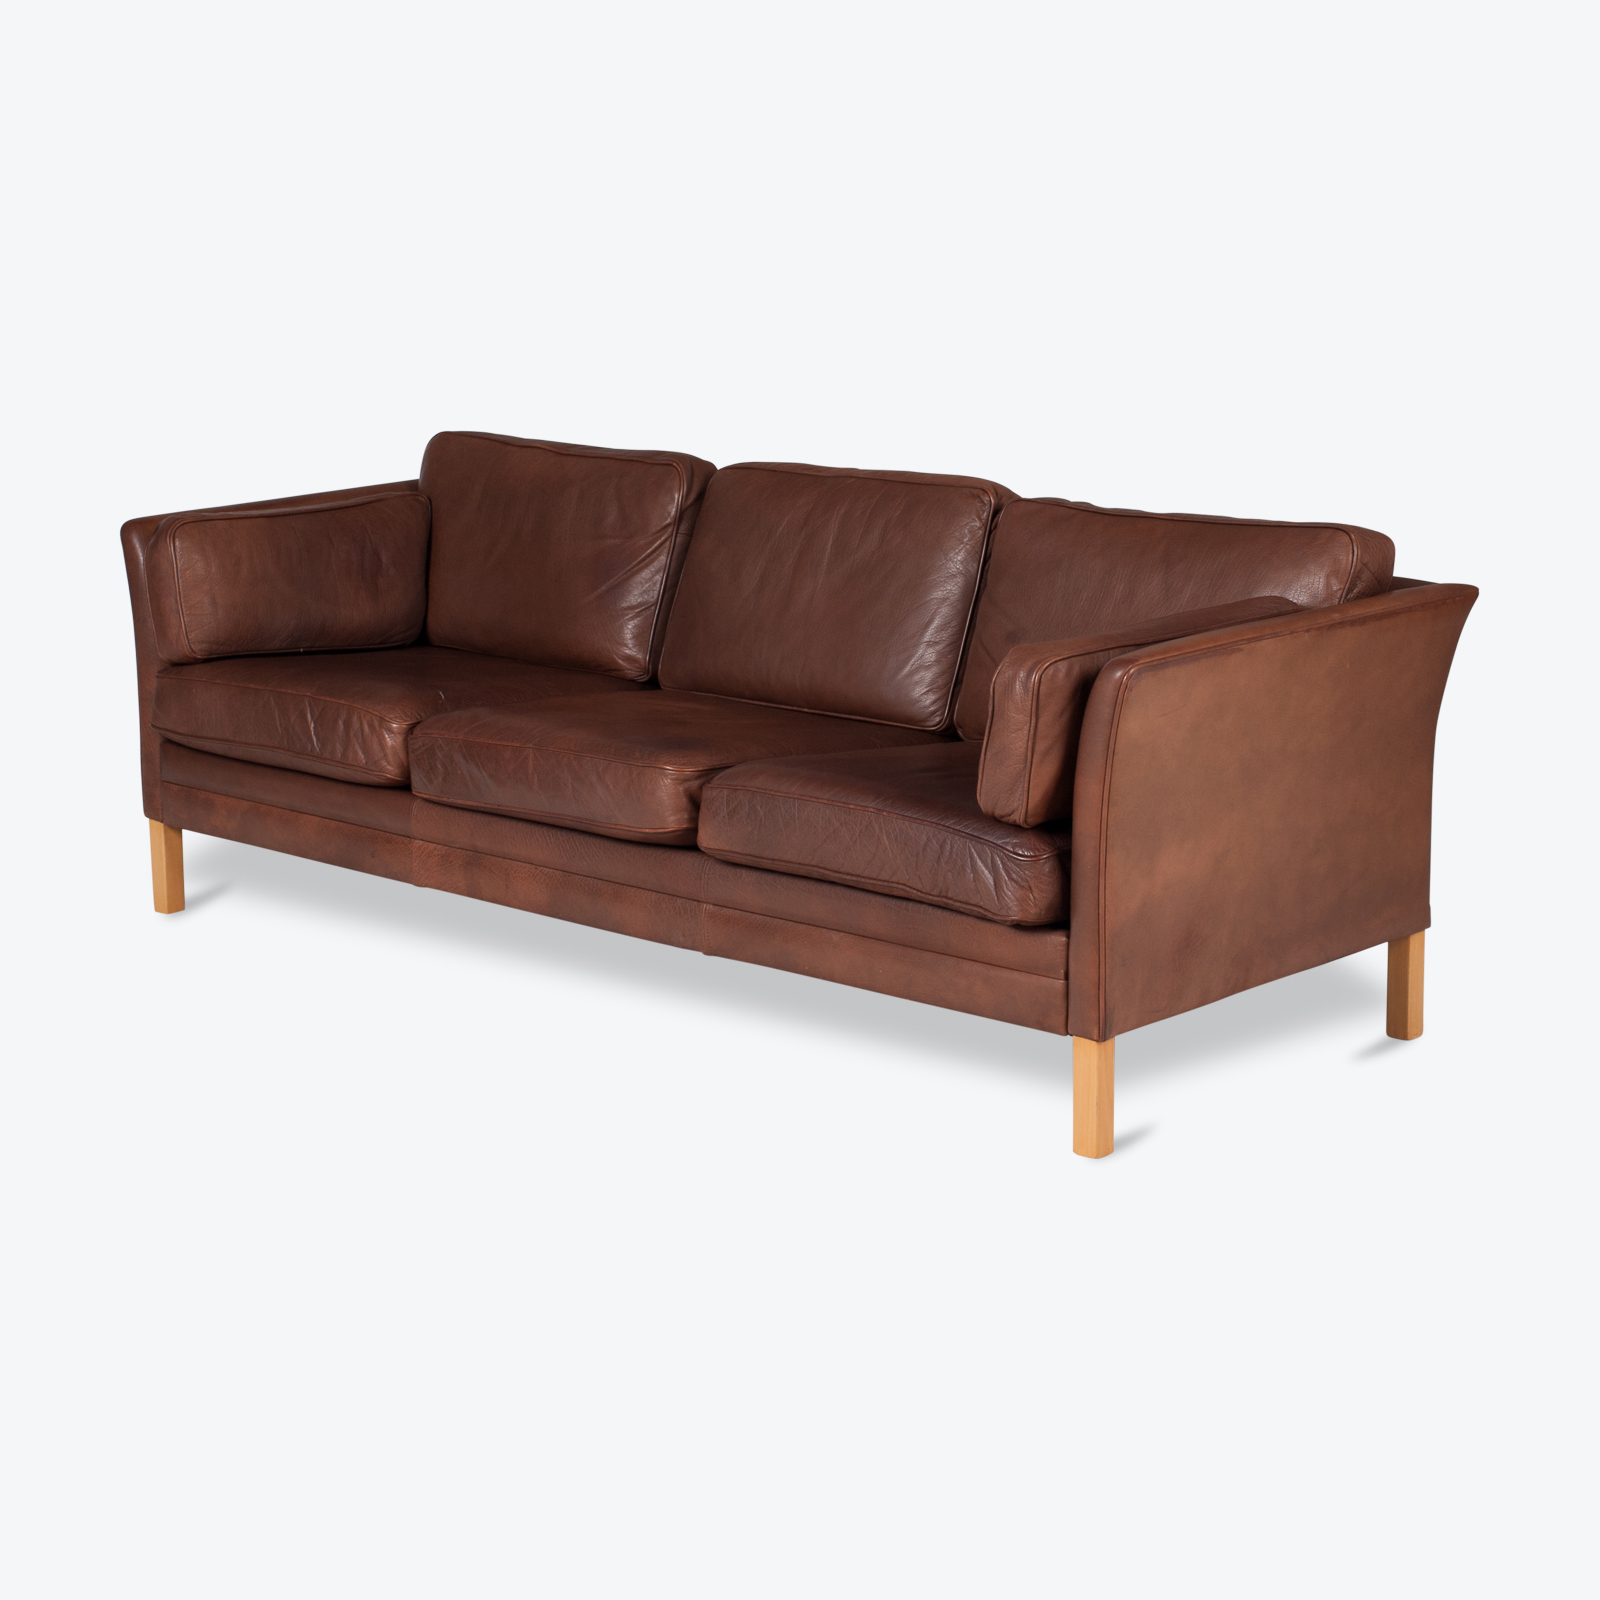 3 Seat Sofa In Brown Leather With Beech Legs, 1960s, Denmark Hero 1